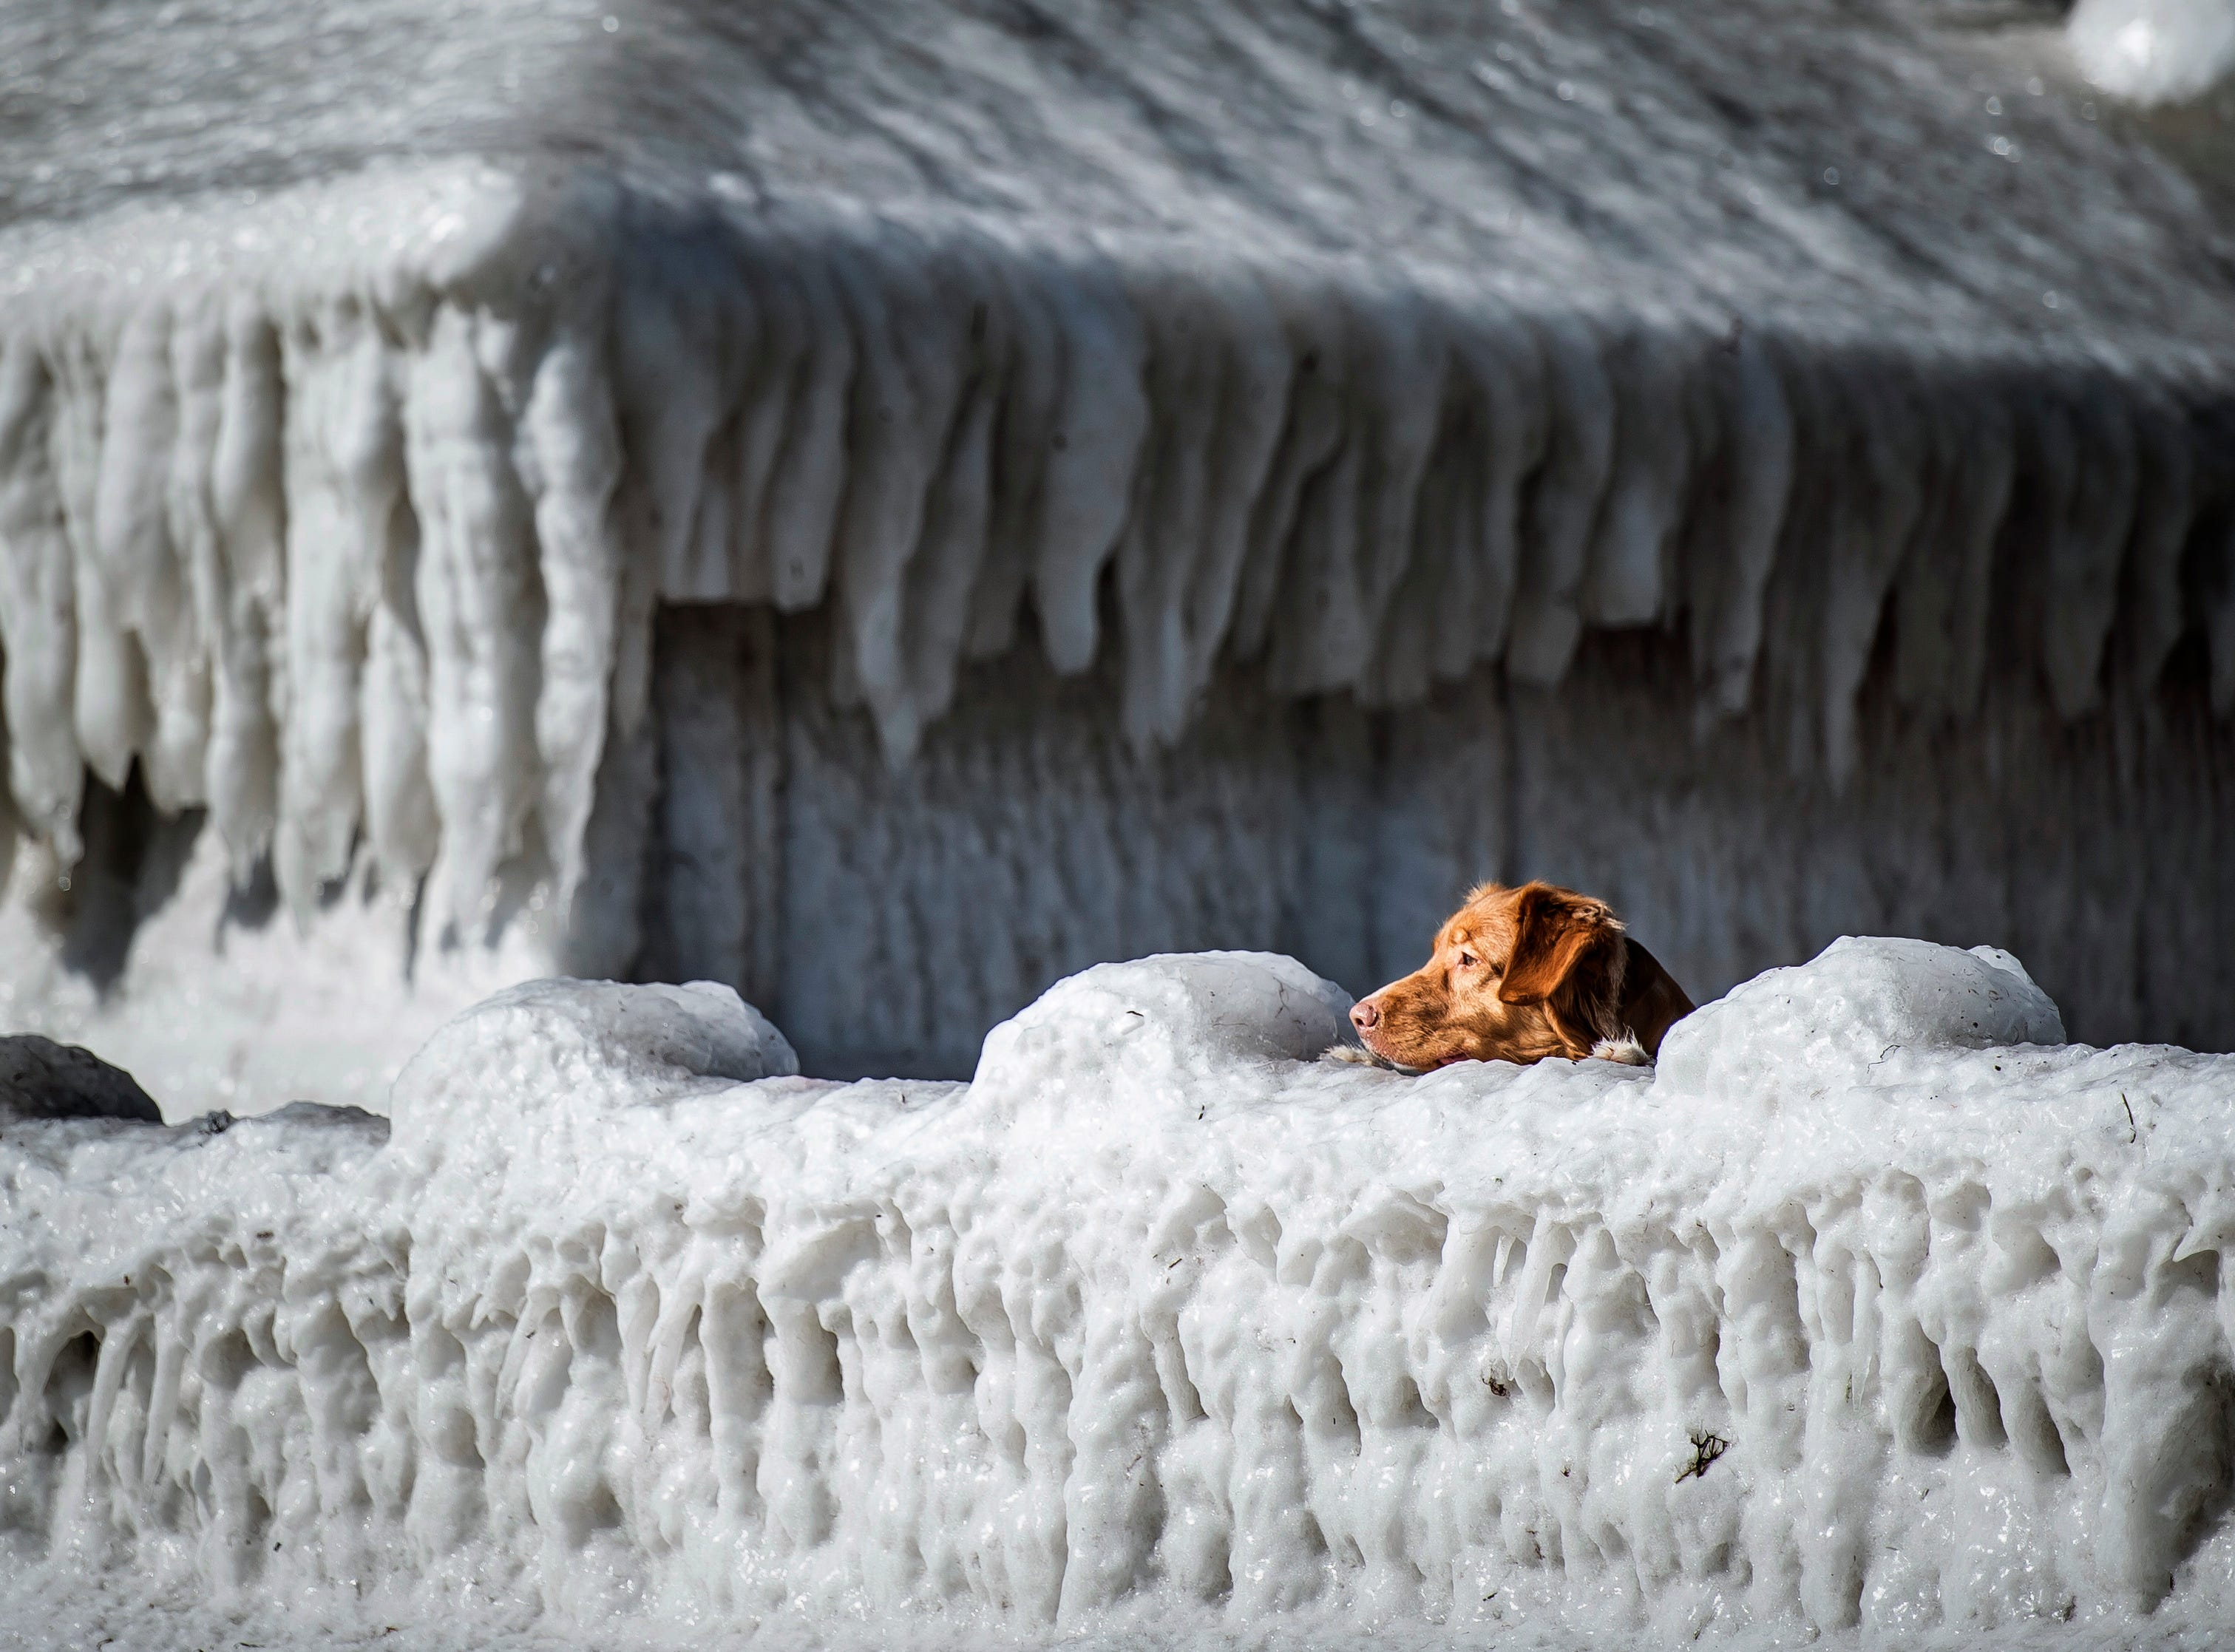 March 19, 2018: A dog looks over a wall in front of a house covered in ice, at Faxe Bay, South of Copenhagen, Denmark.